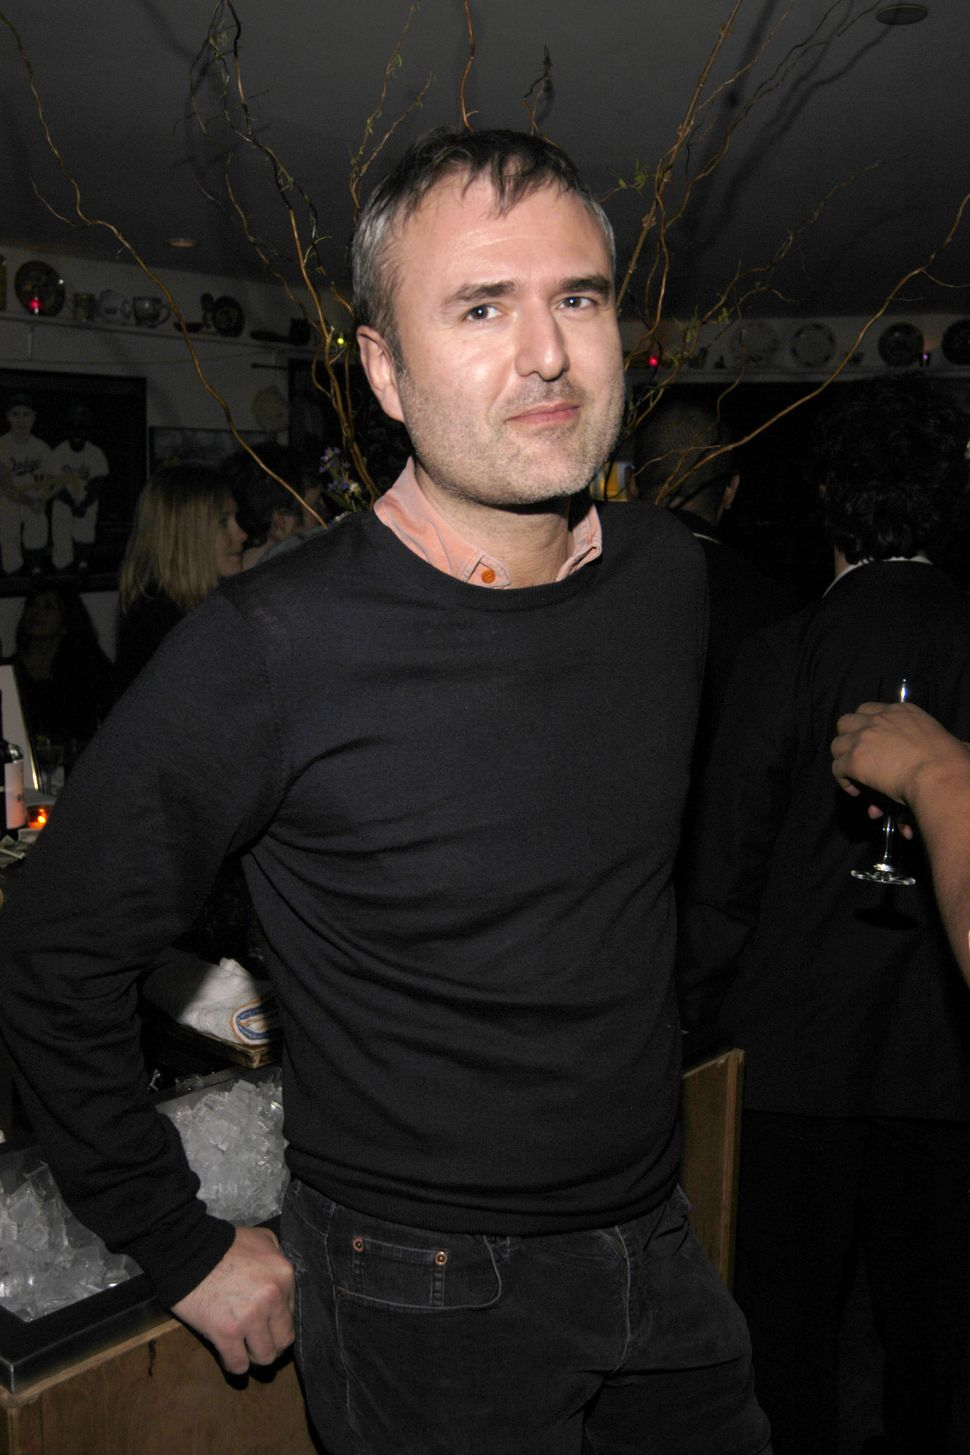 Deadliest Klatsch: Nick Denton Gives Gawker's Drive-By Peanut Gallery a Promotion